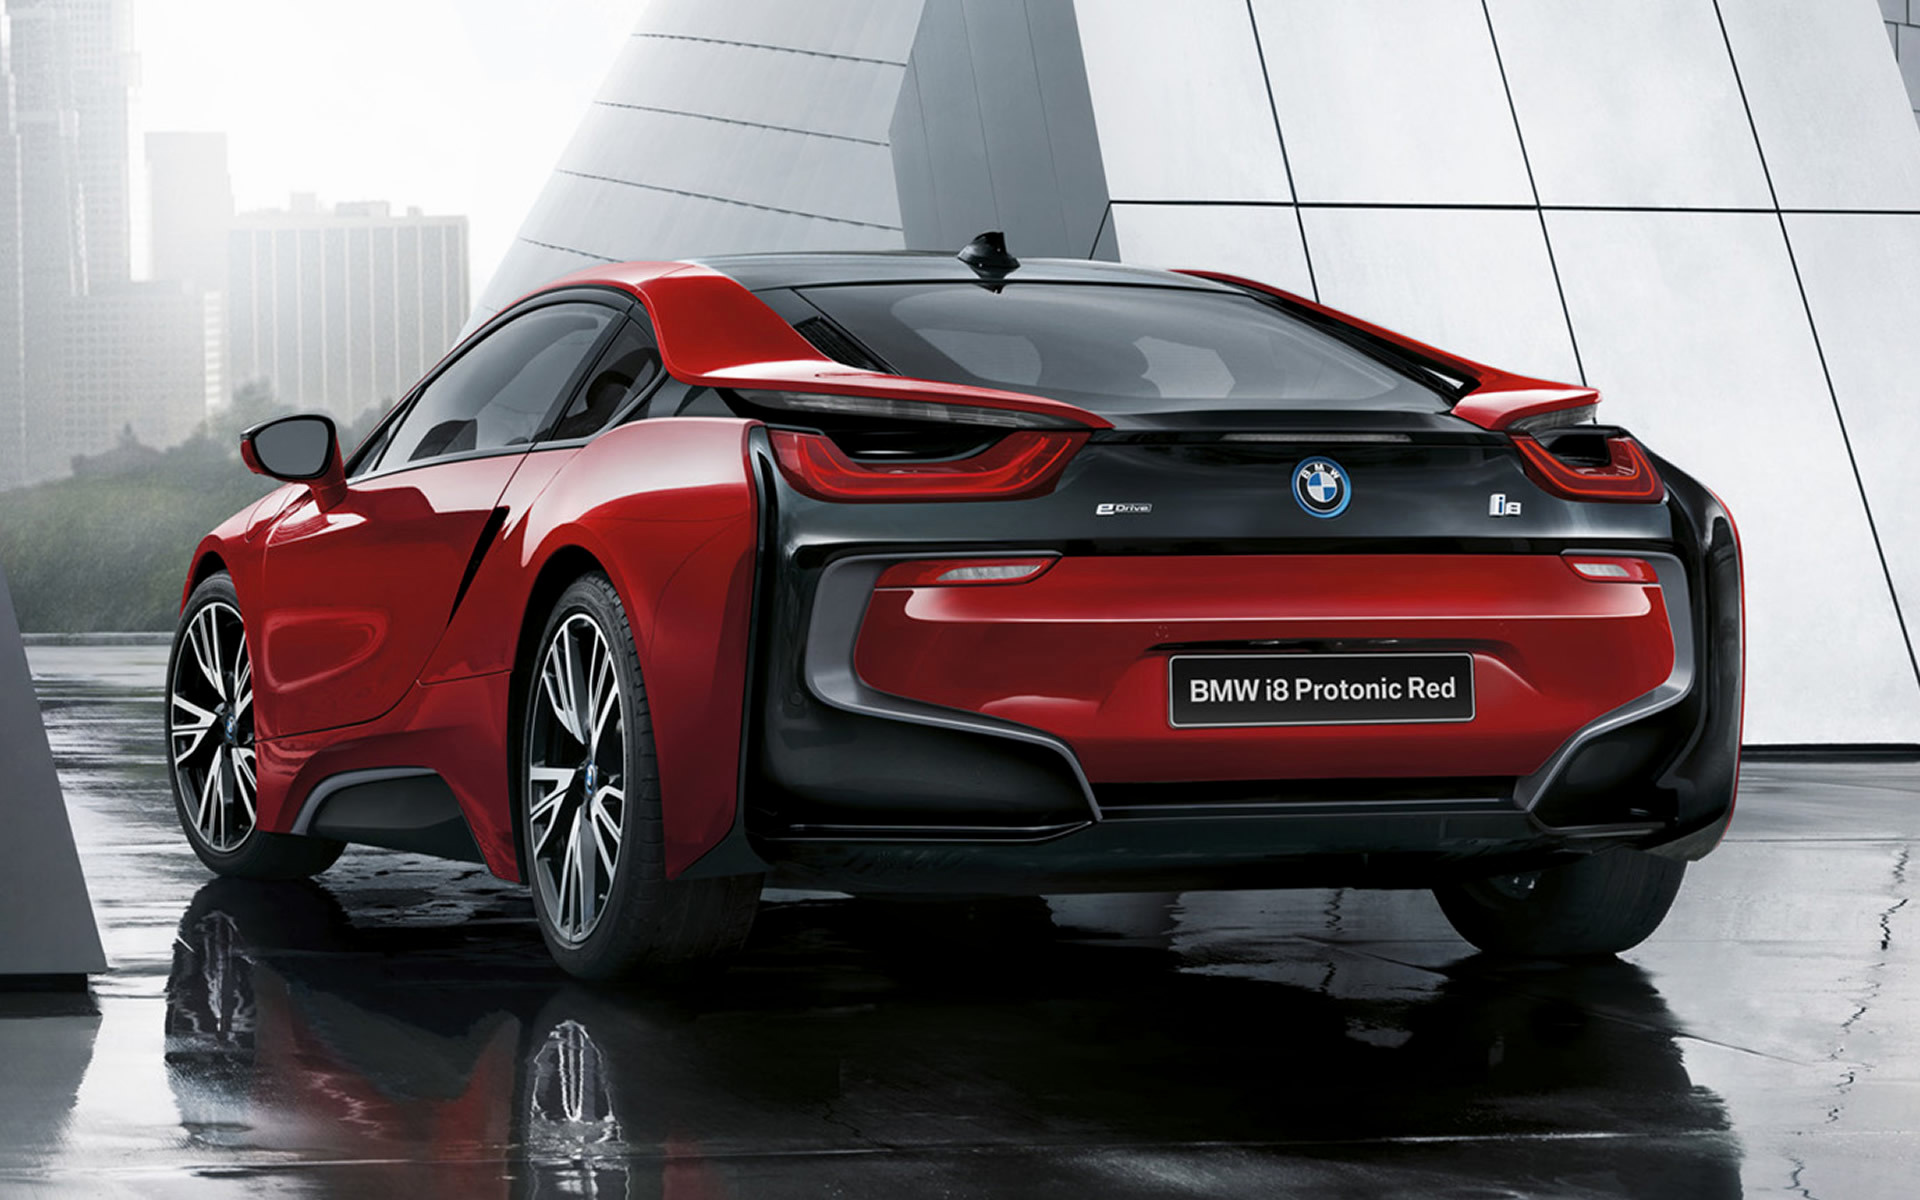 bmw i8 protonic red edition (2016) wallpapers and hd images - car pixel